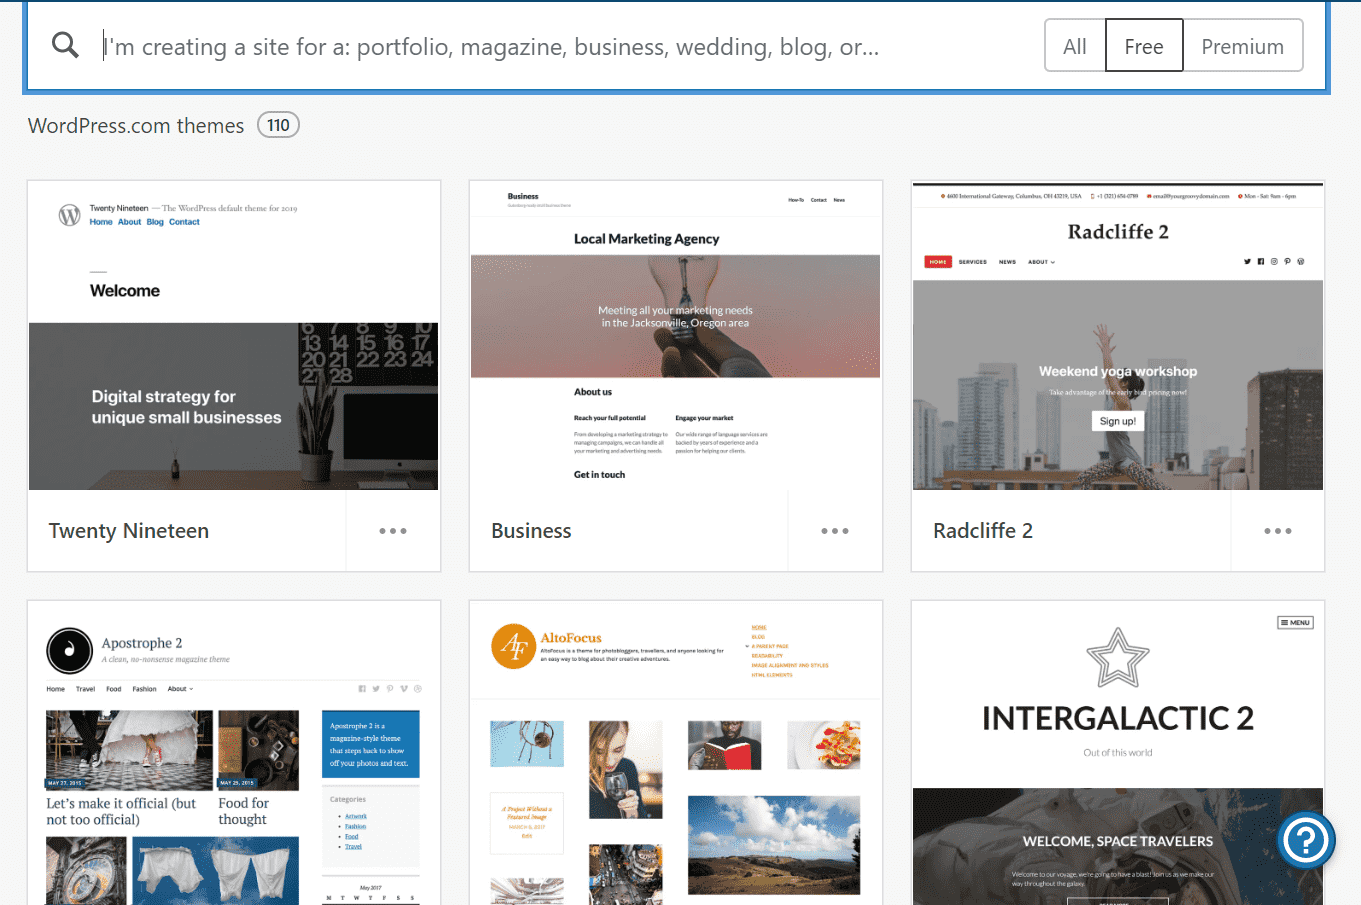 wp.com features themes